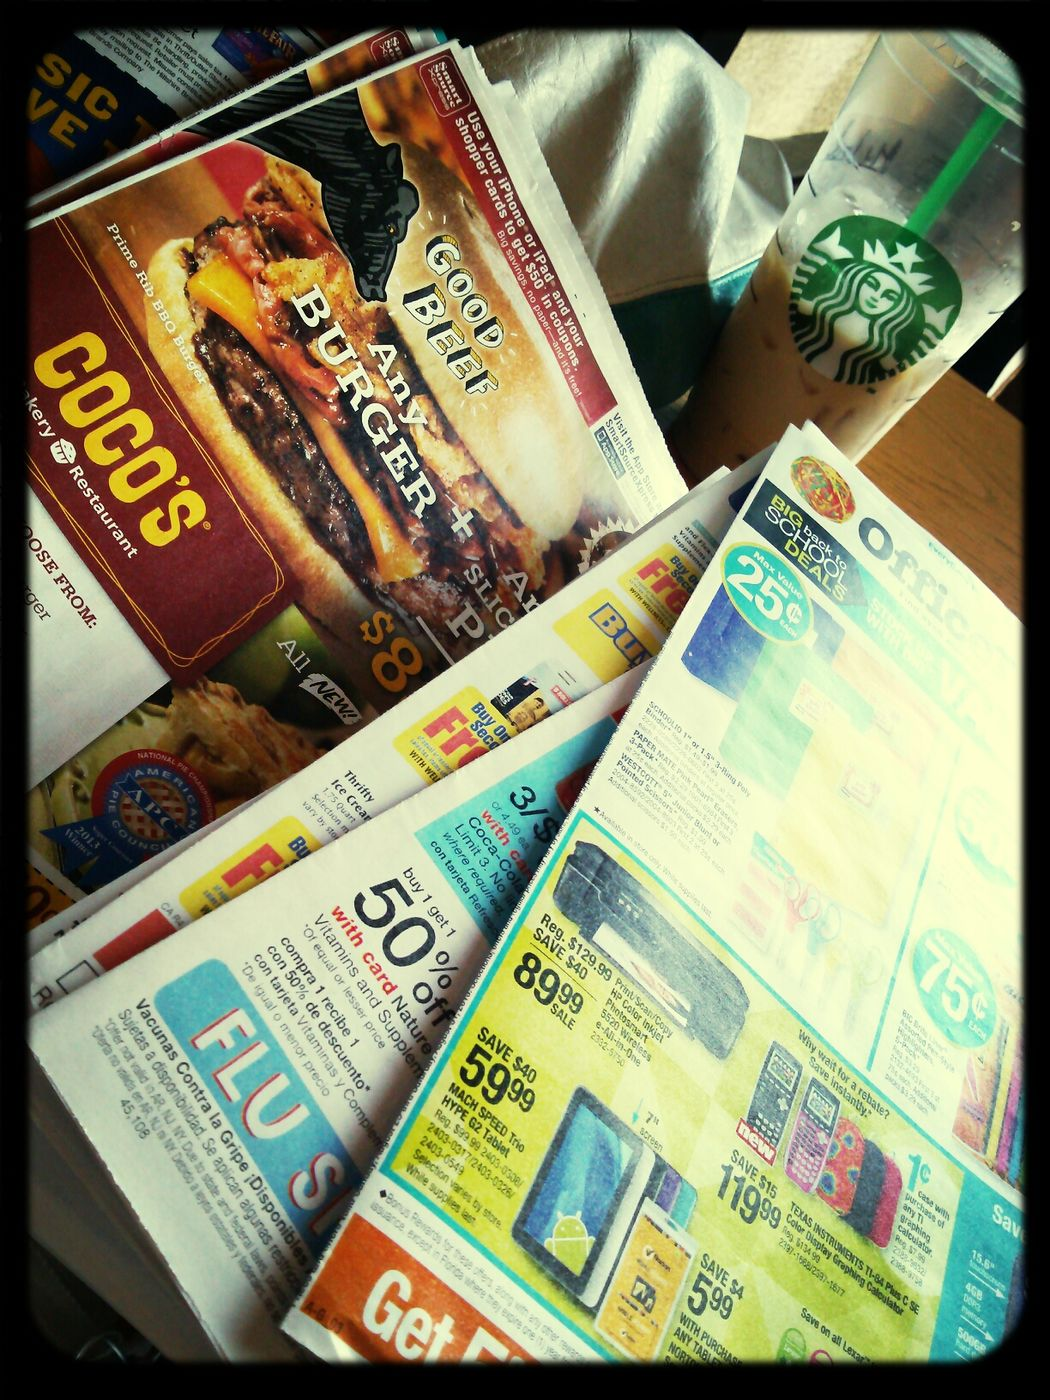 sunday = coupons & starbucks :) Time to find deals